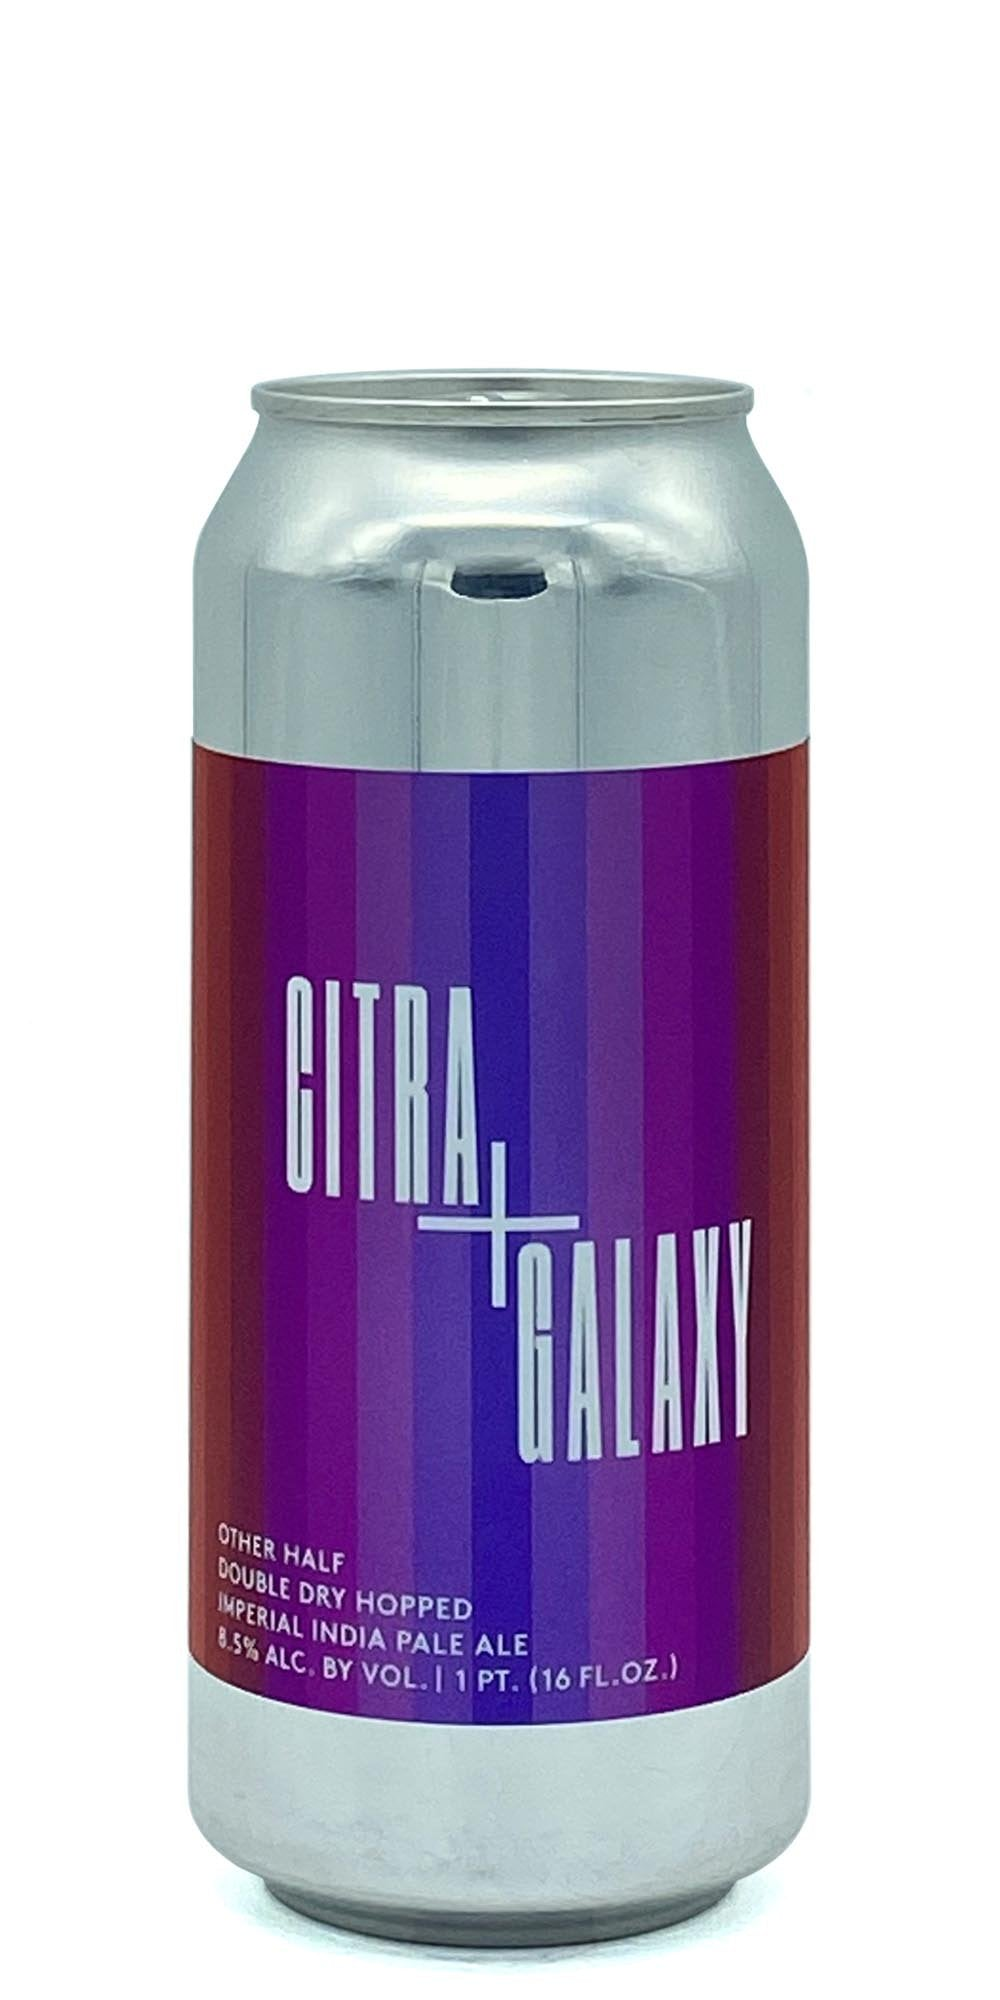 Other Half - DDH Citra + Galaxy